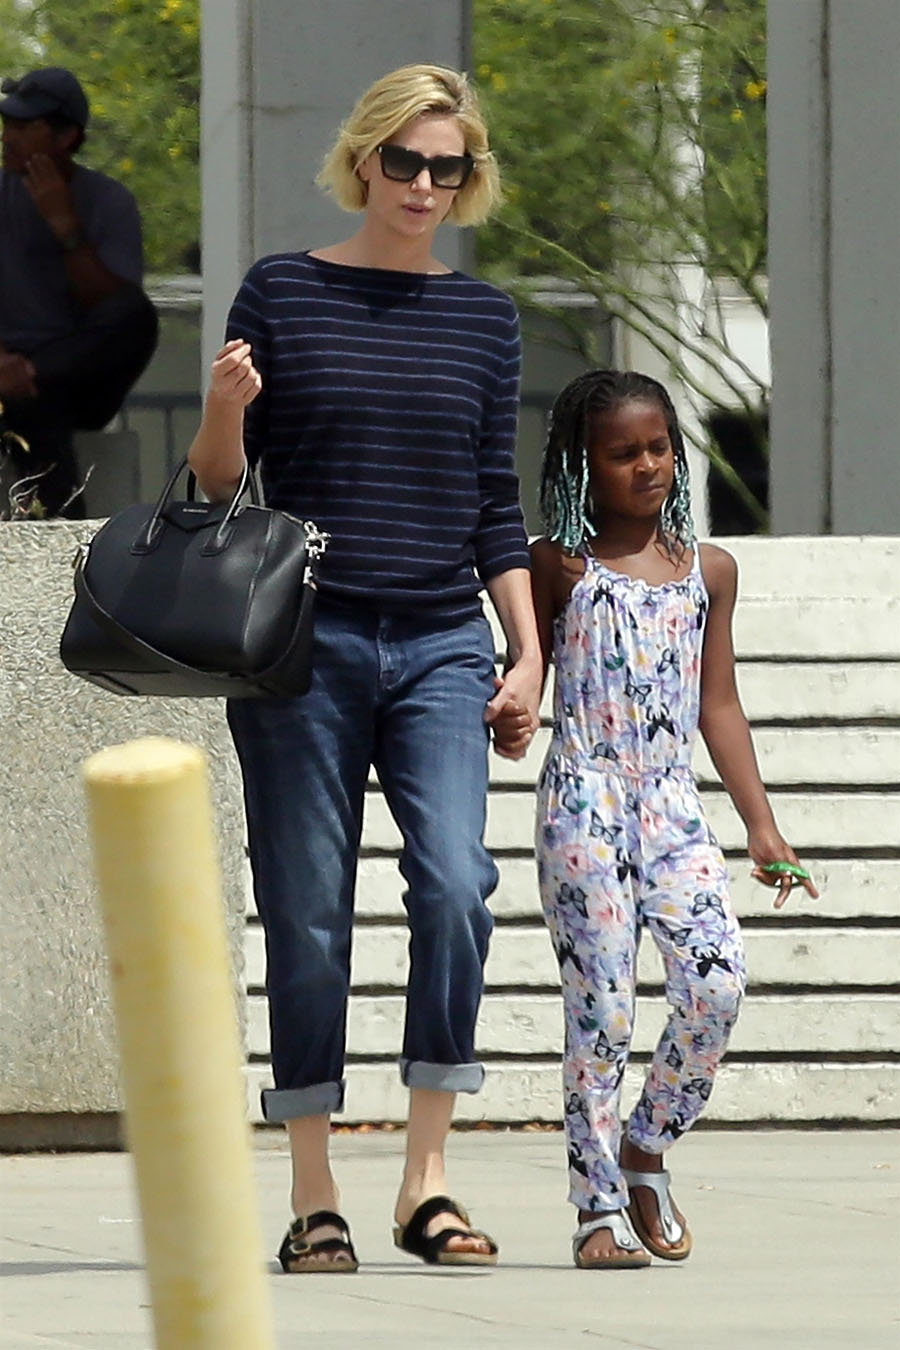 charlize theron is seen visiting the federal building in